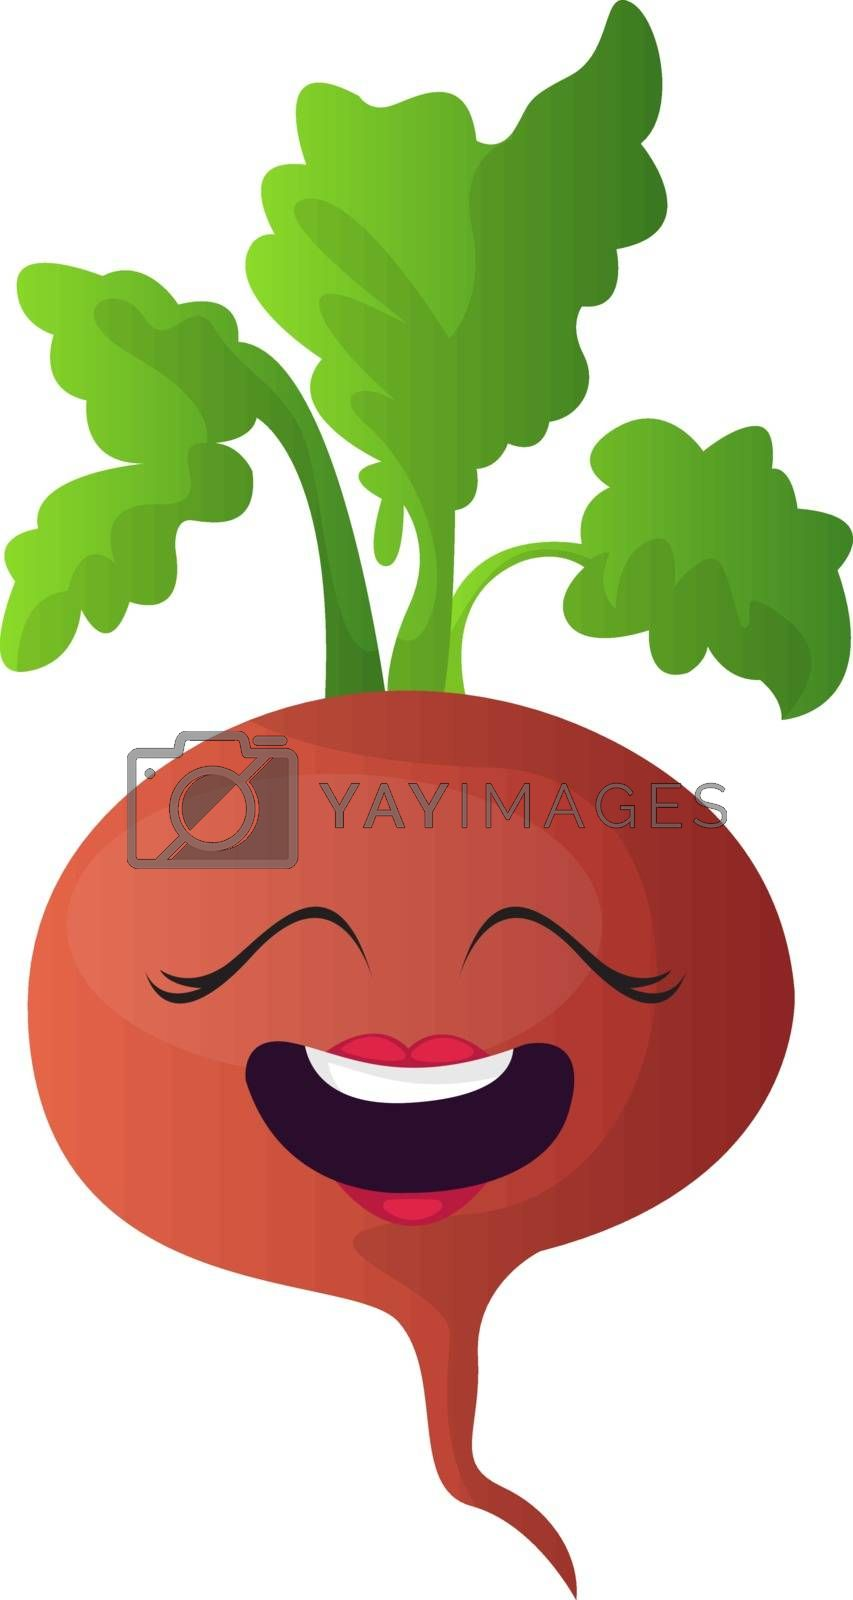 Royalty free image of Happy red turnip with green leaf illustration vector on white ba by Morphart